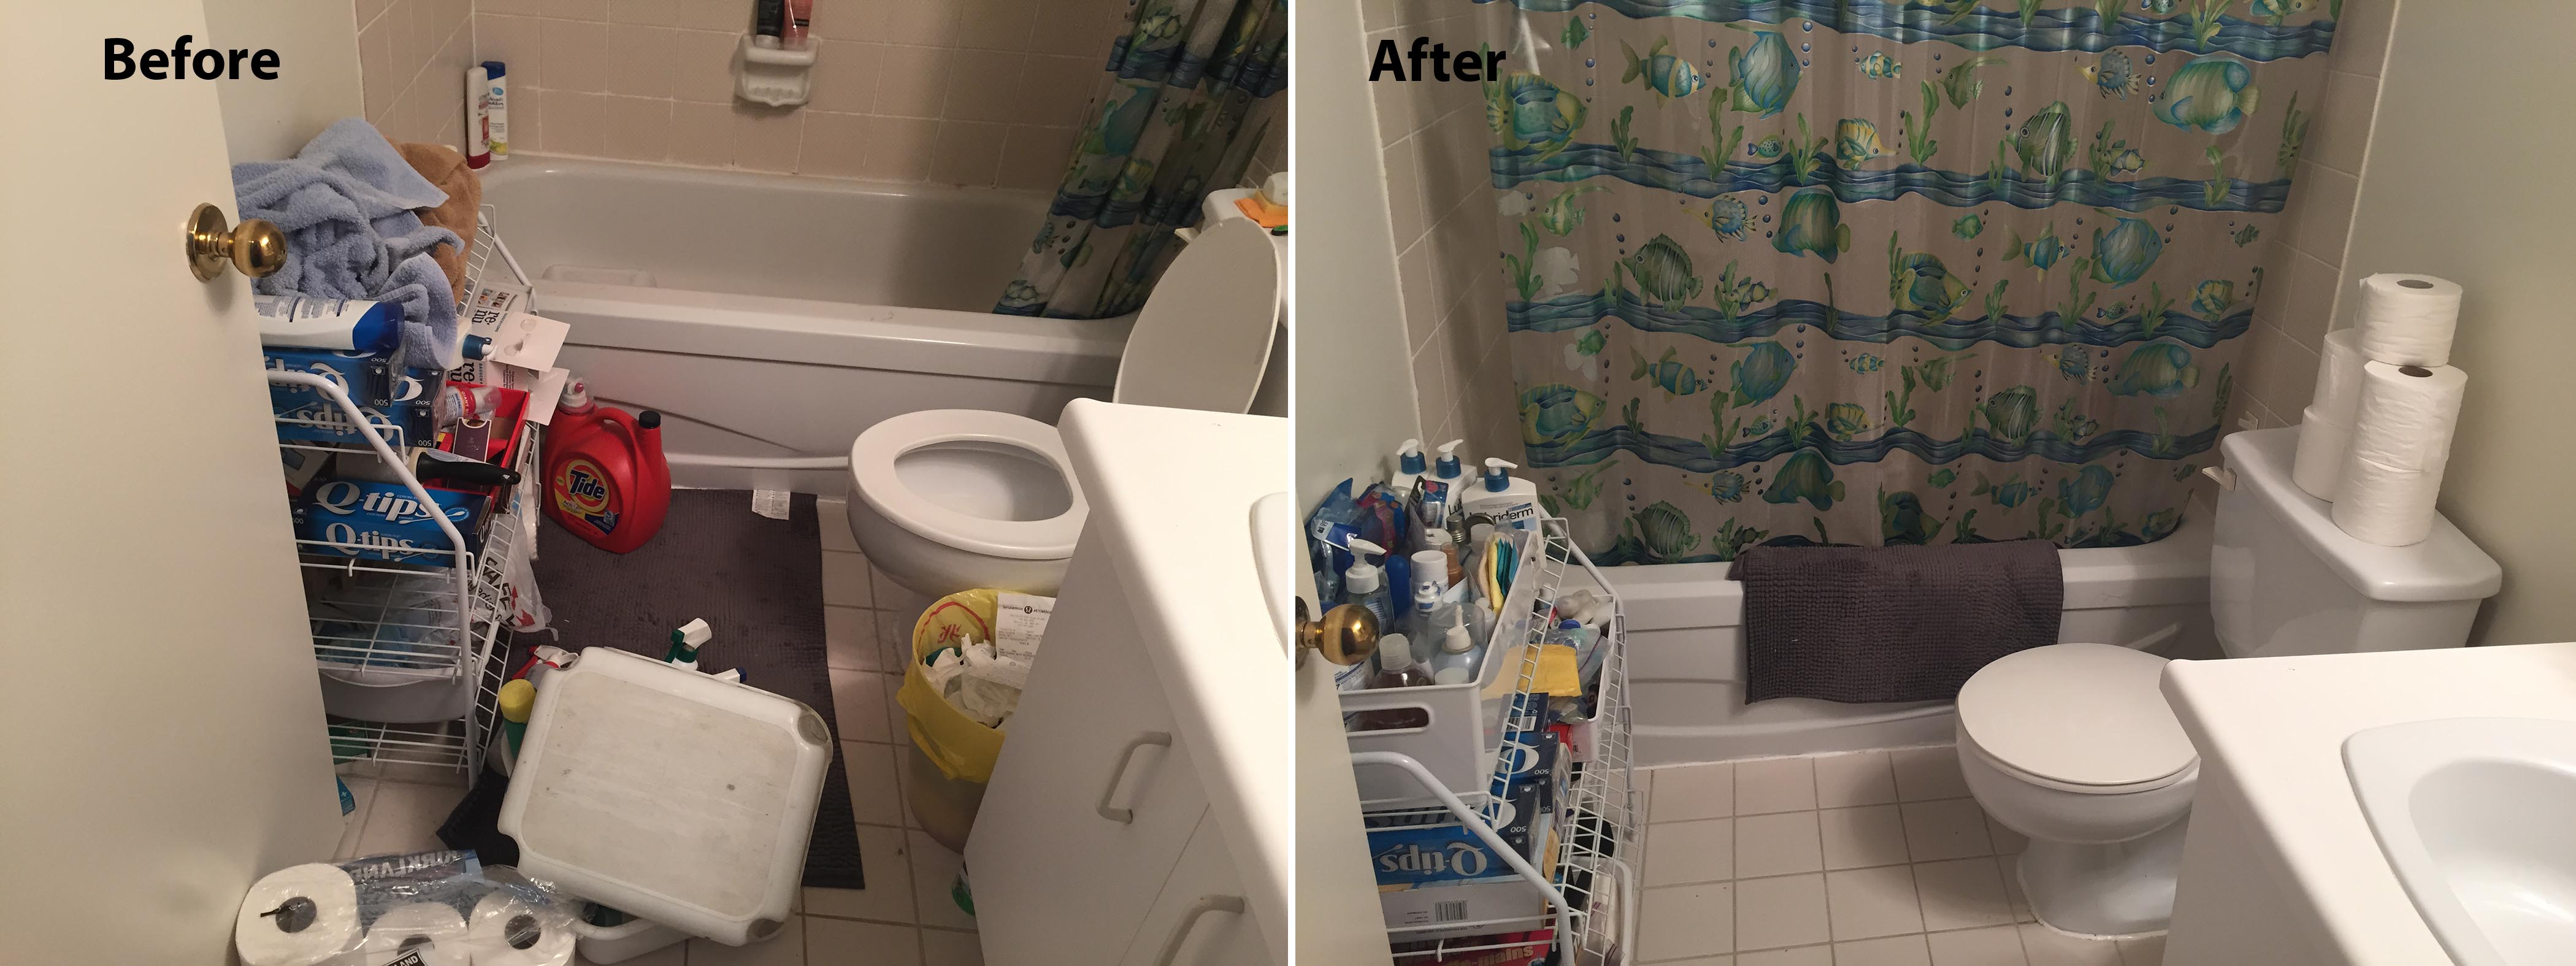 before and after photo of an organized and decluttered bathroom